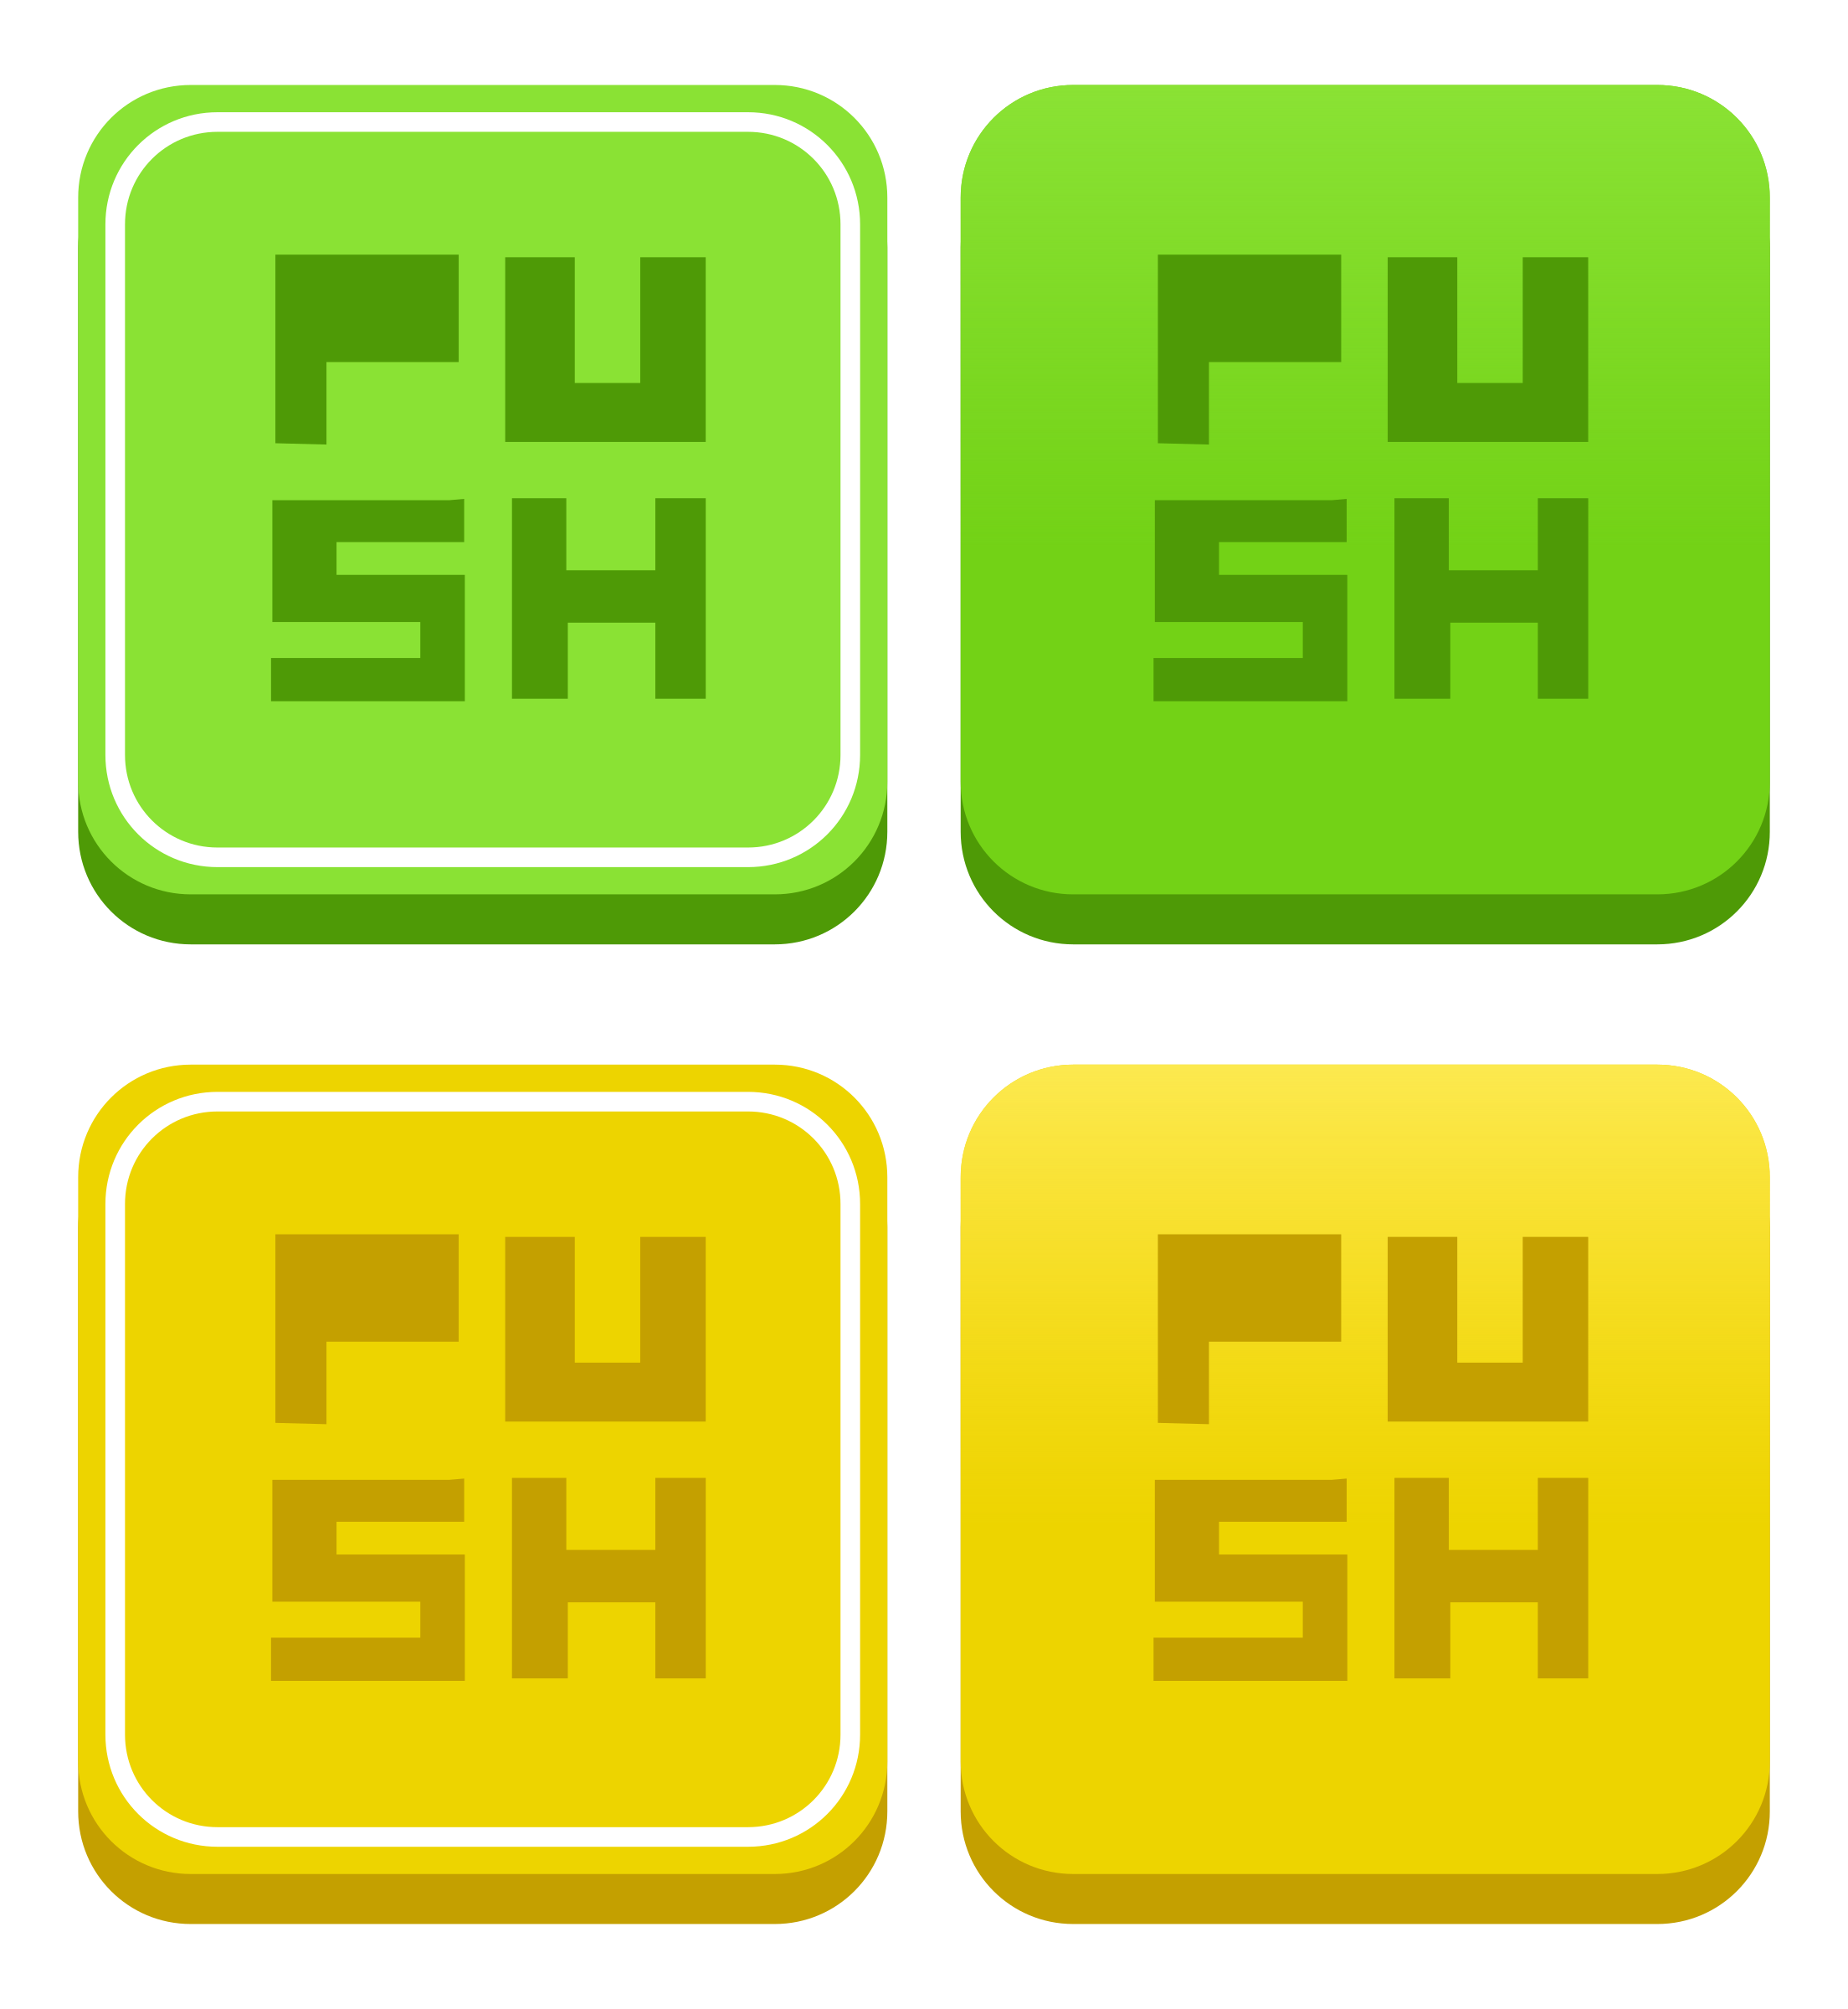 Game button png. Flat shaded minimal ui